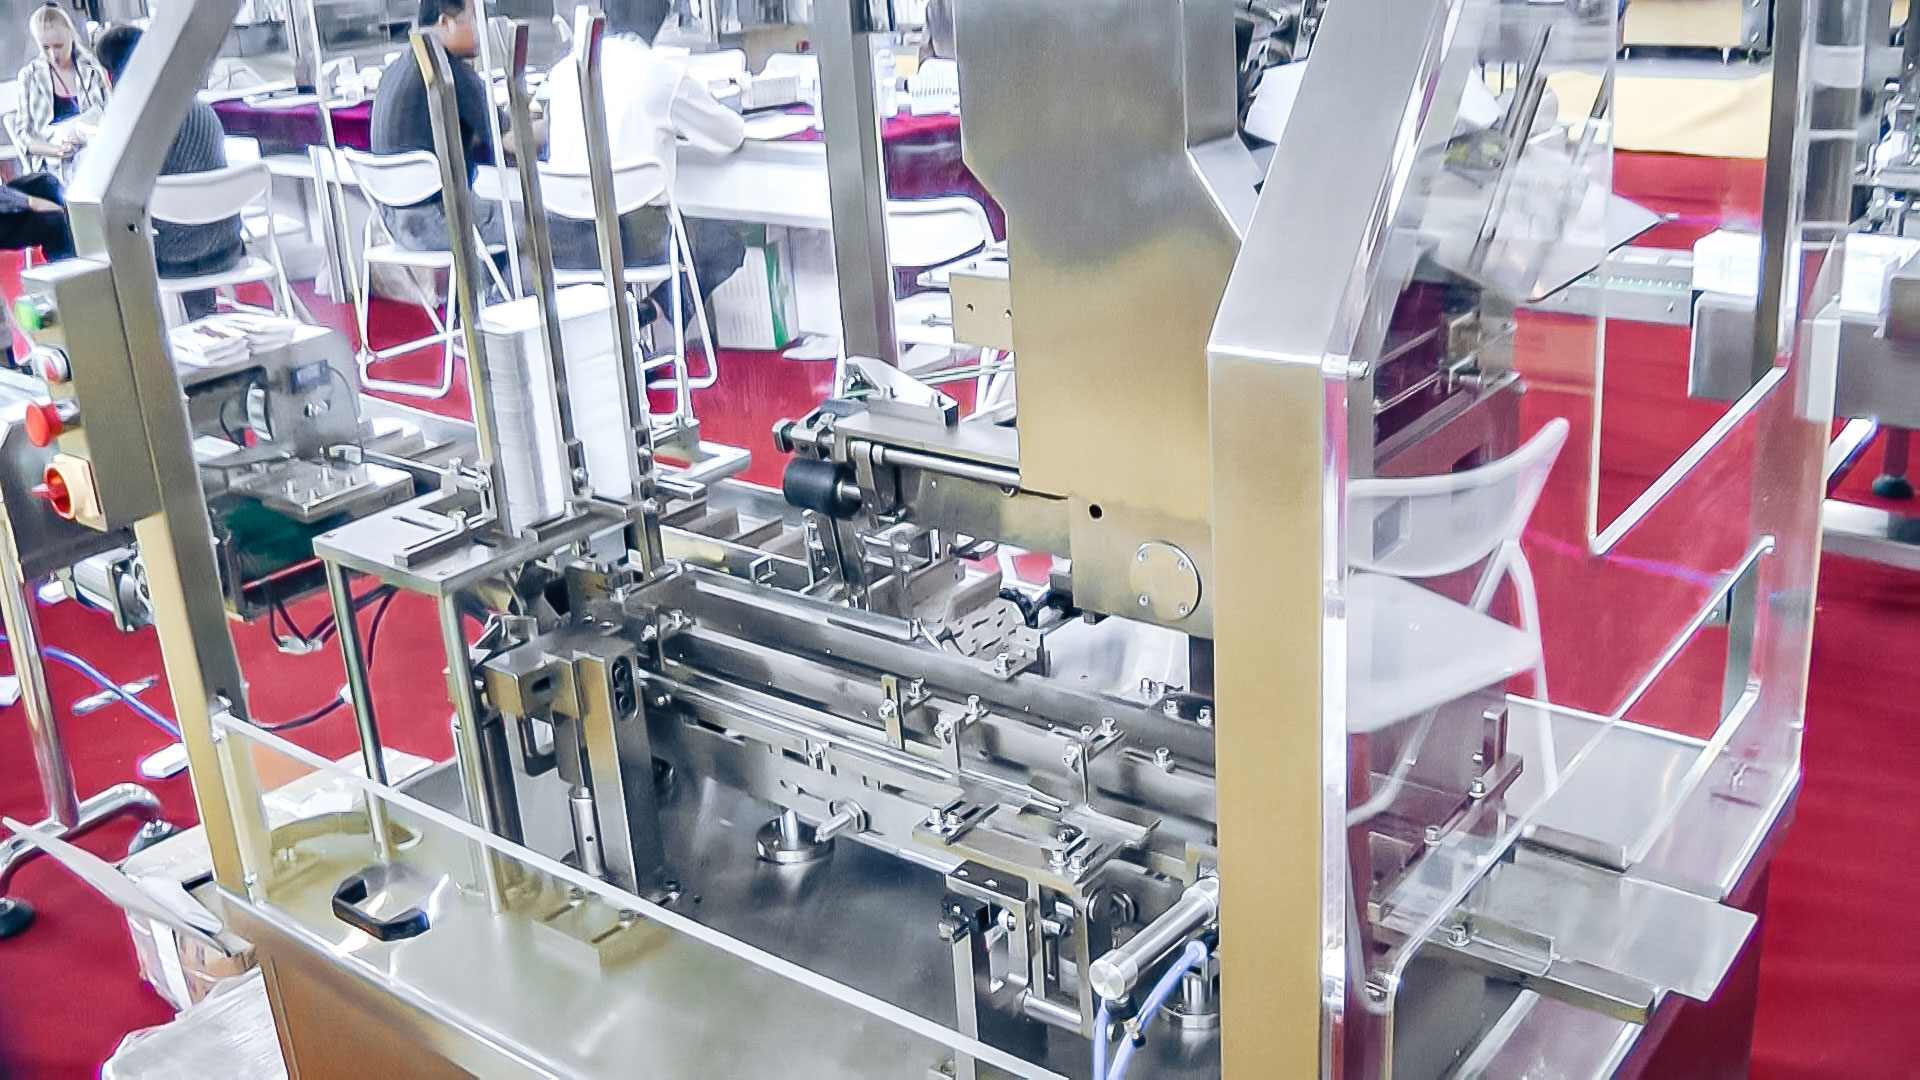 Automatic equipment for packaging in blister cartons with tablets in pharmaceutical production